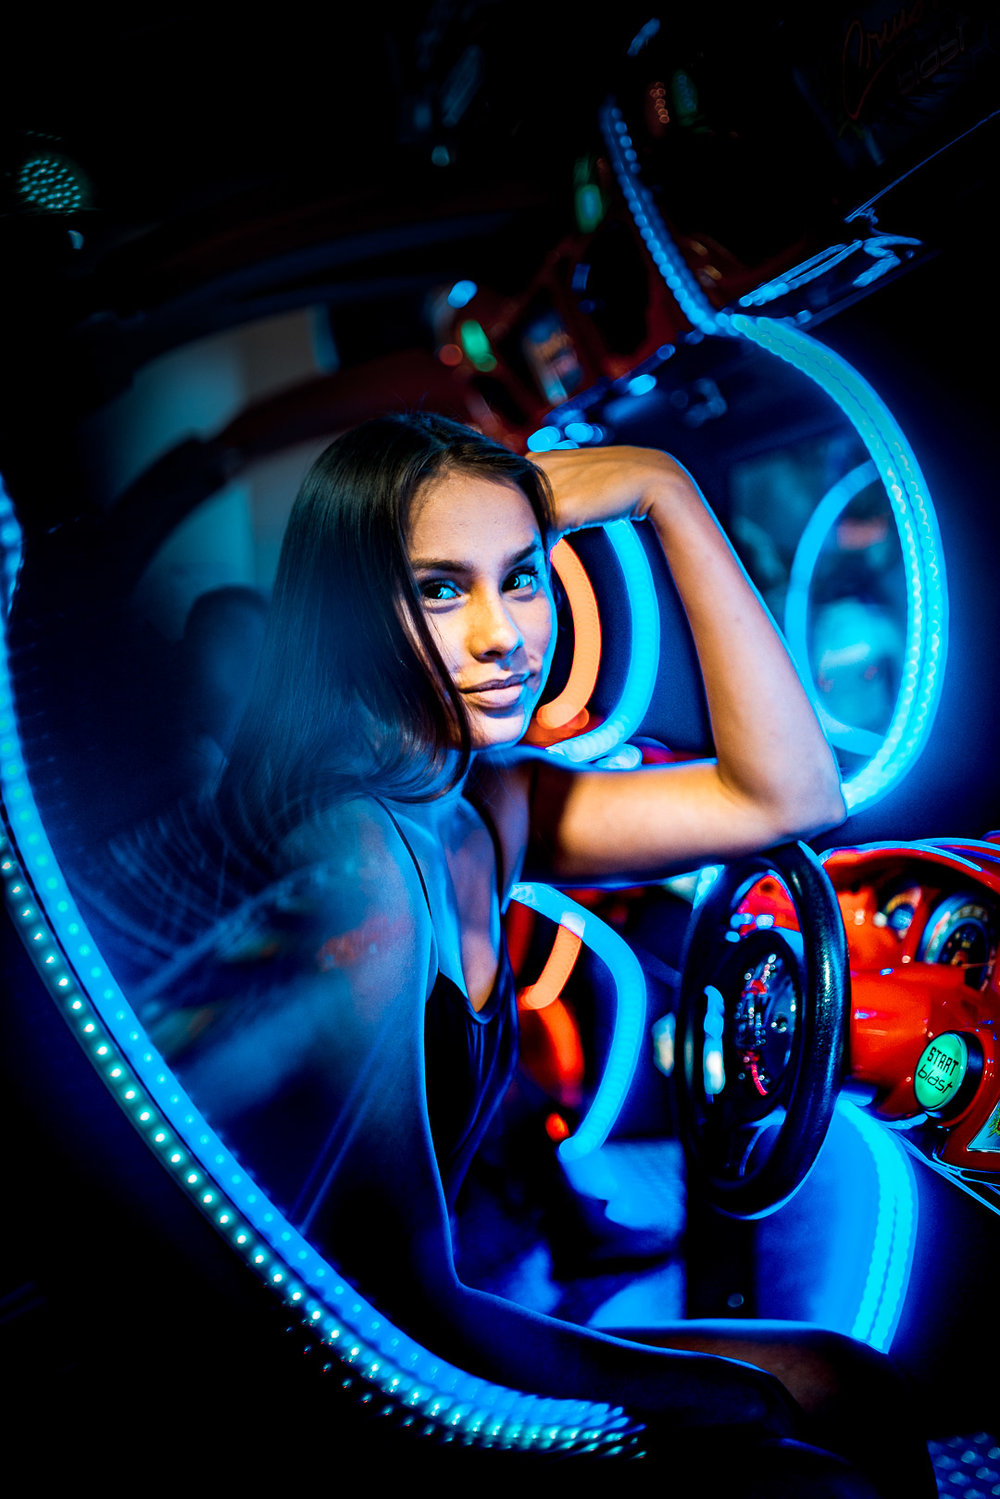 Neon Portraits - Searching a different light